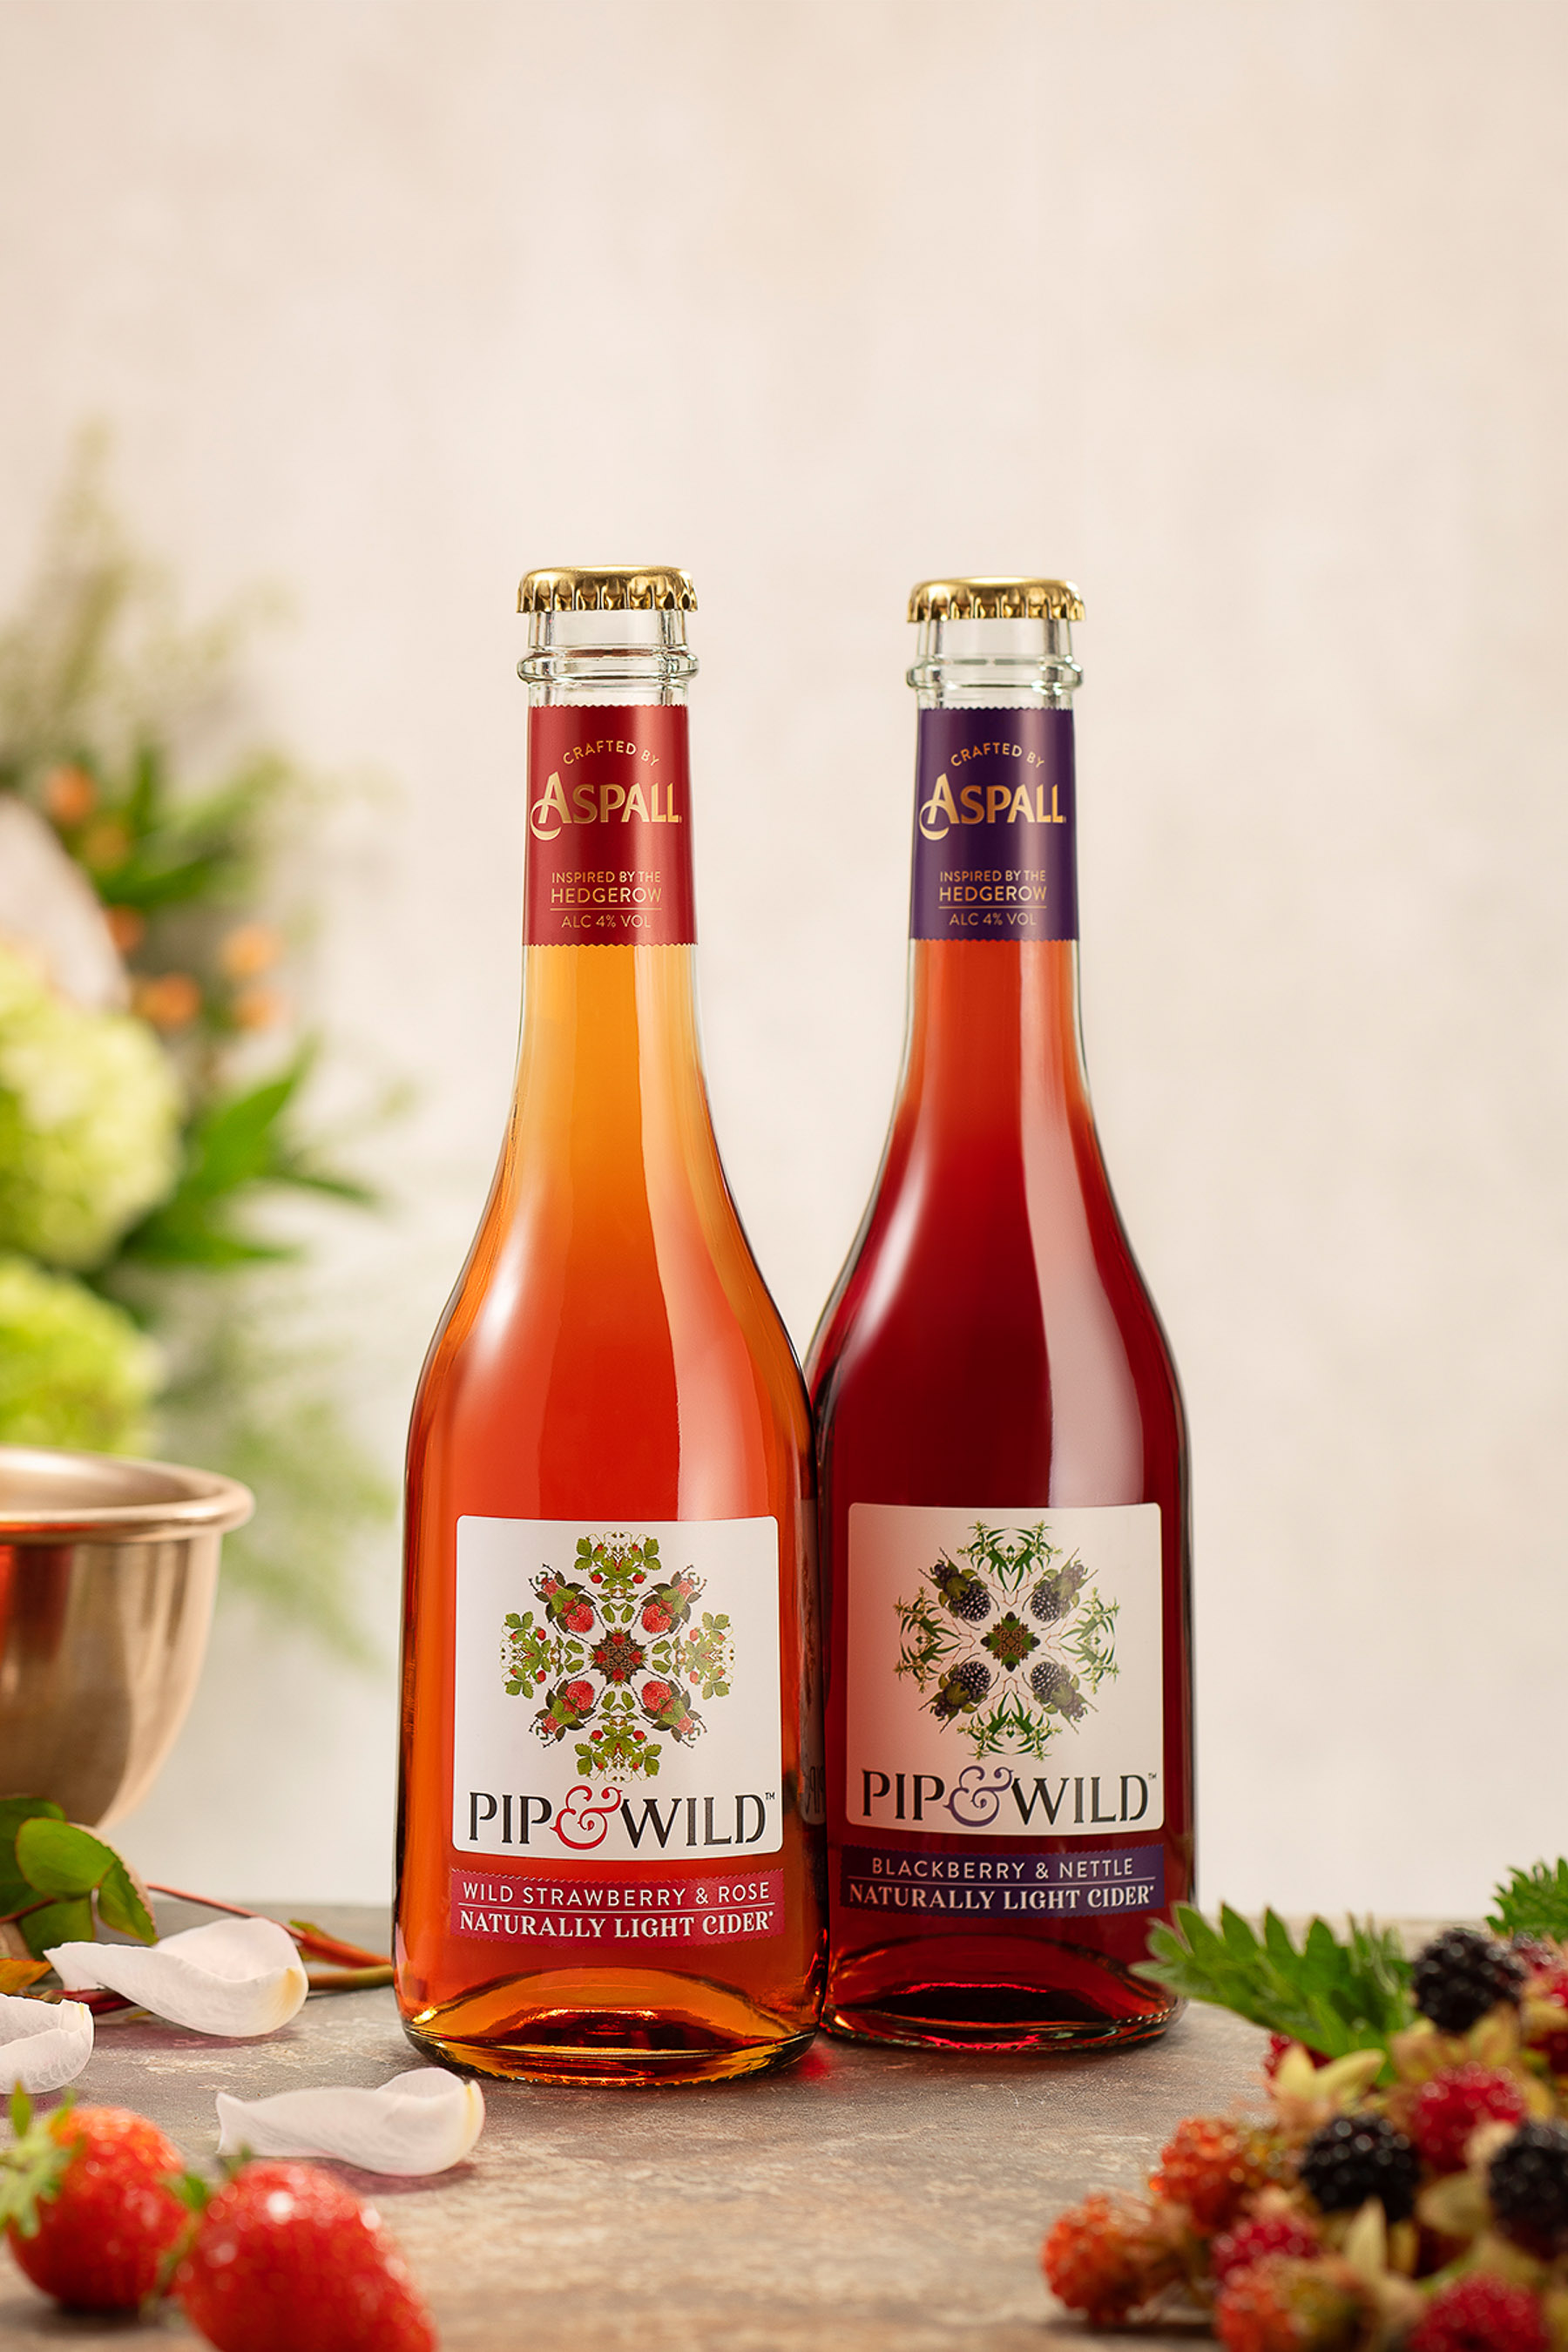 190411 MCBC Aspall Pip & Wild_Duo_Bottles_1800px-1800px